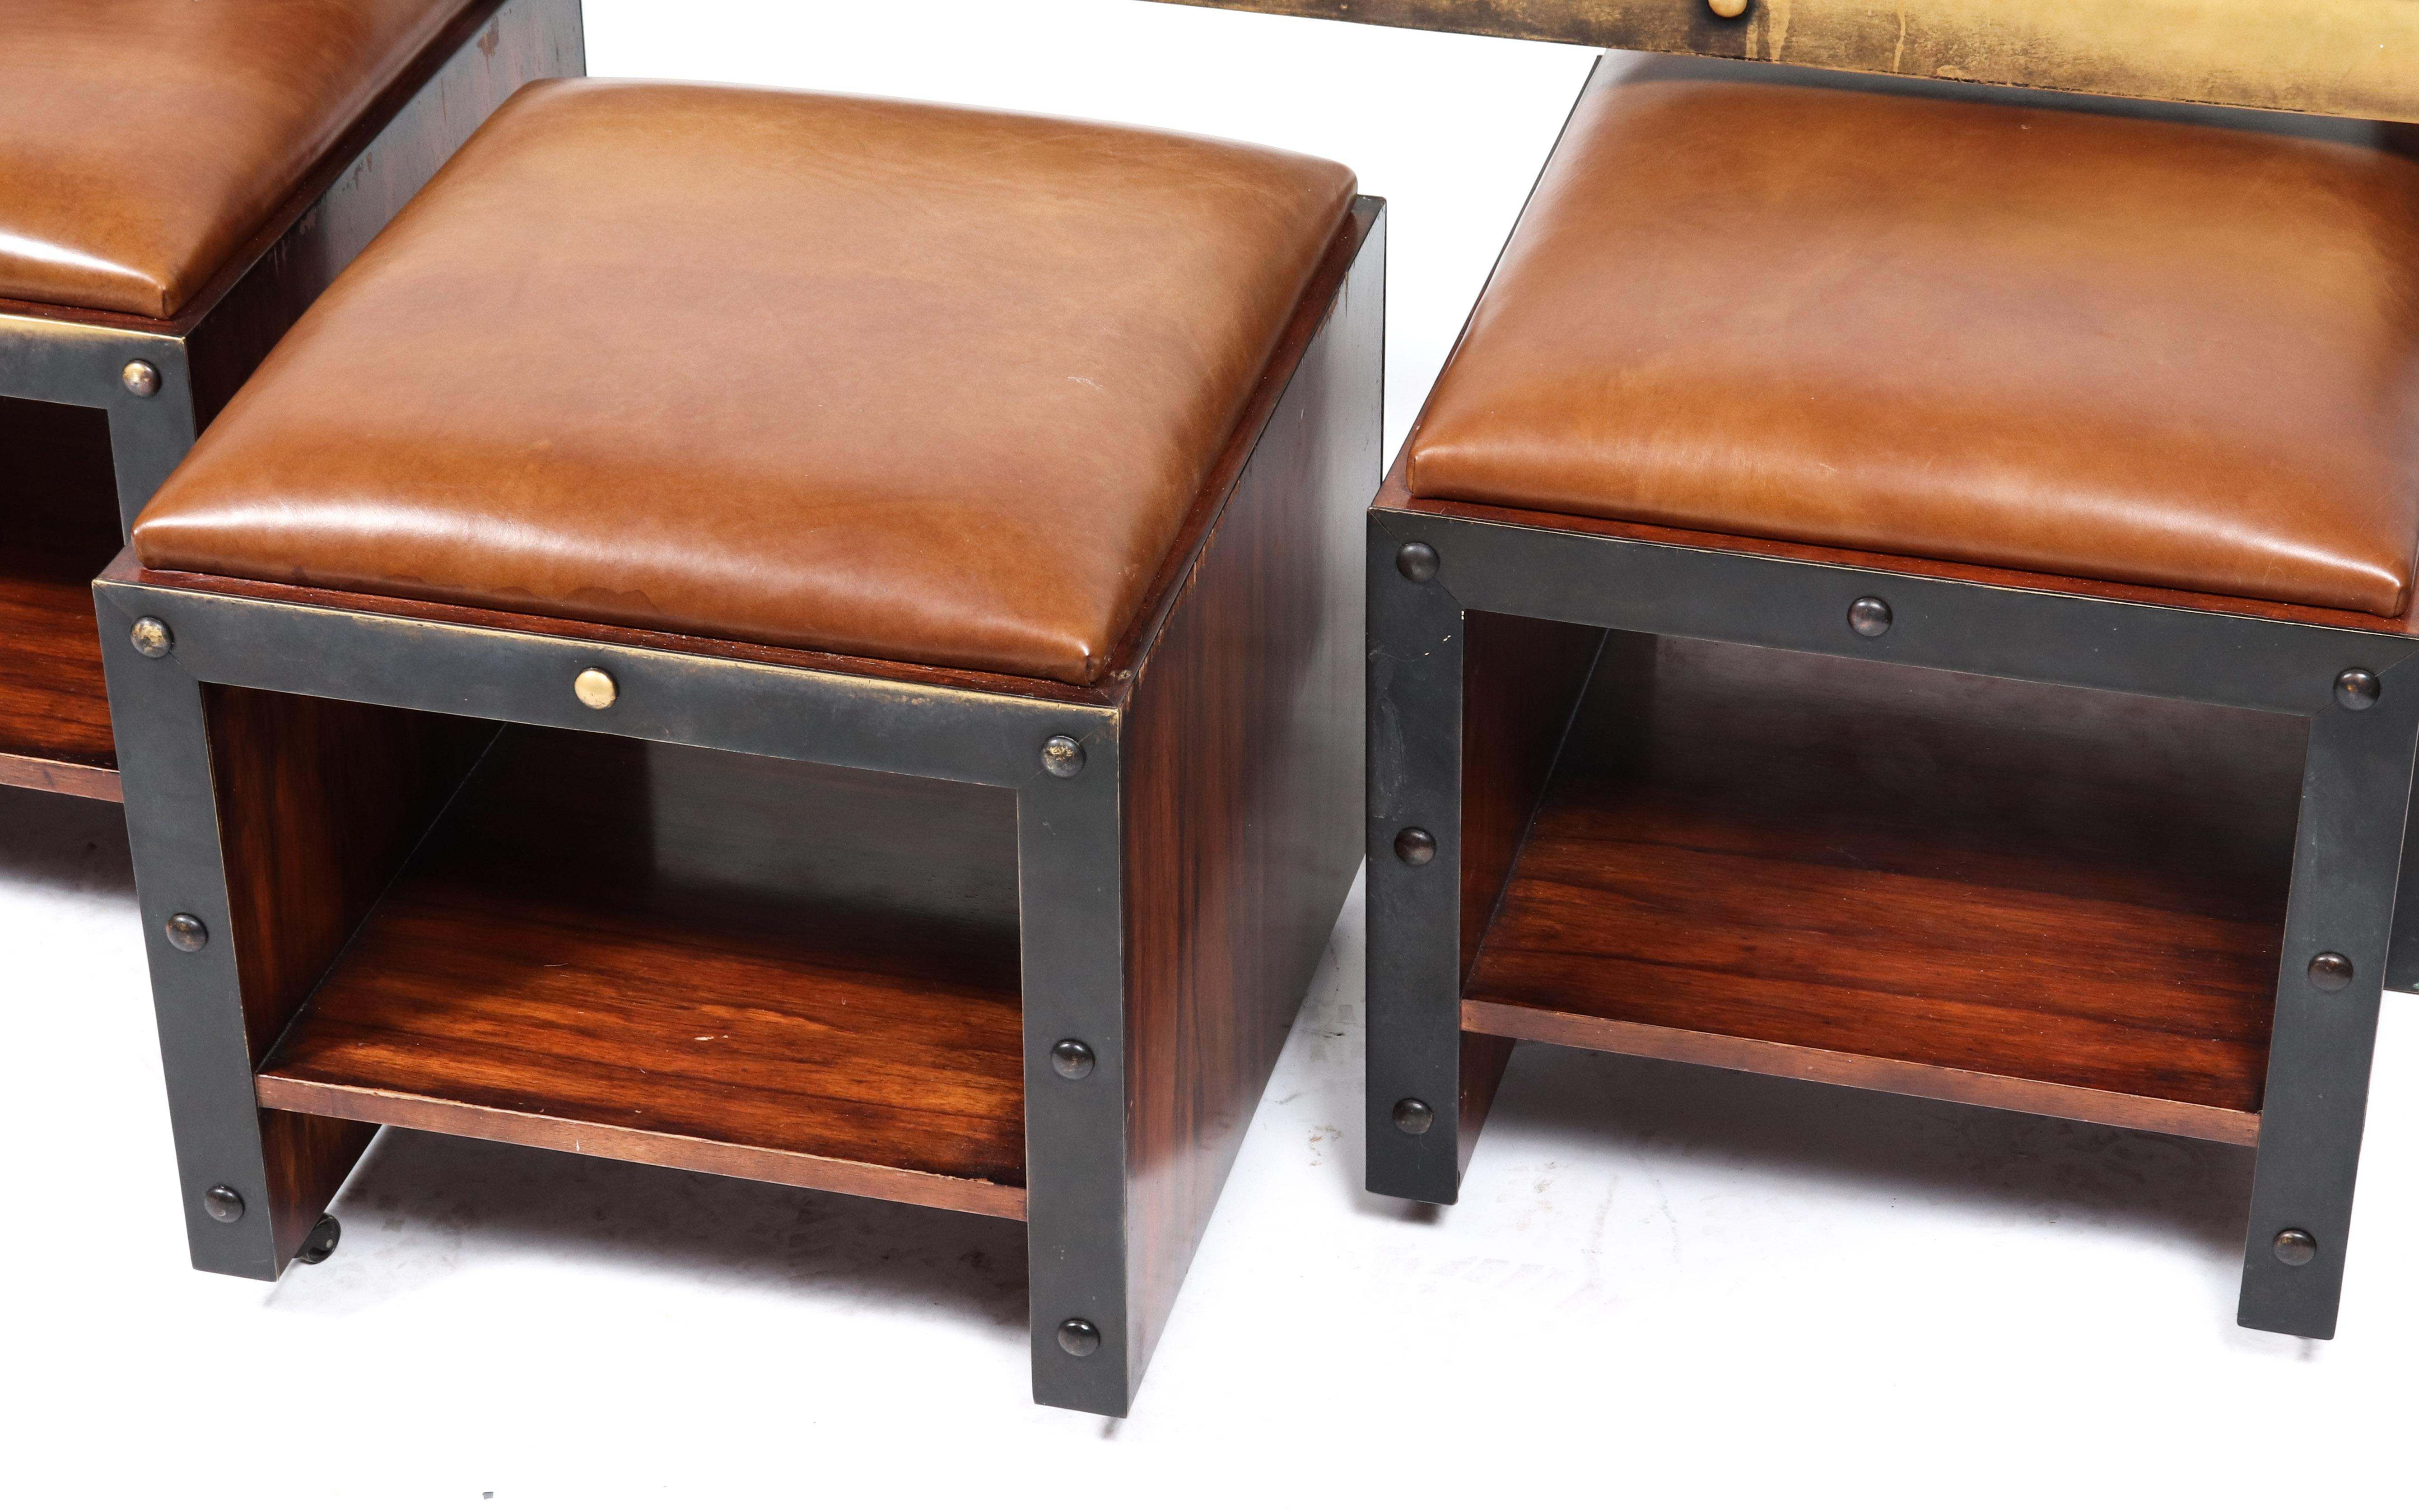 timothy oulton set with industrial table ottoman stools set of 4